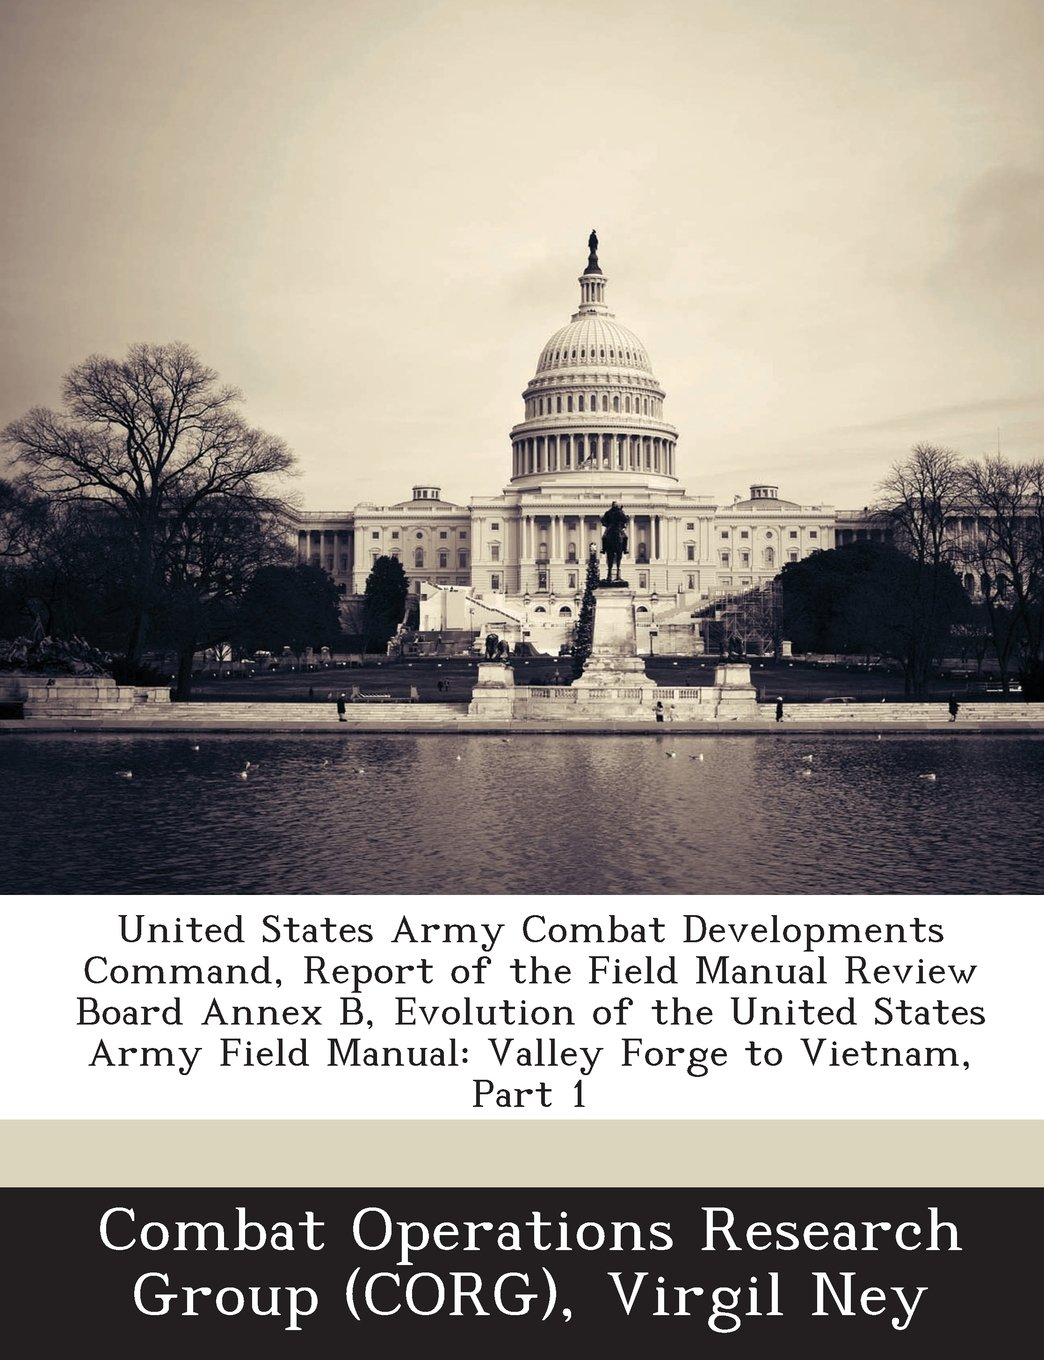 United States Army Combat Developments Command, Report of the Field Manual Review Board Annex B, Evolution of the United States Army Field Manual: Valley Forge to Vietnam, Part 1 ebook